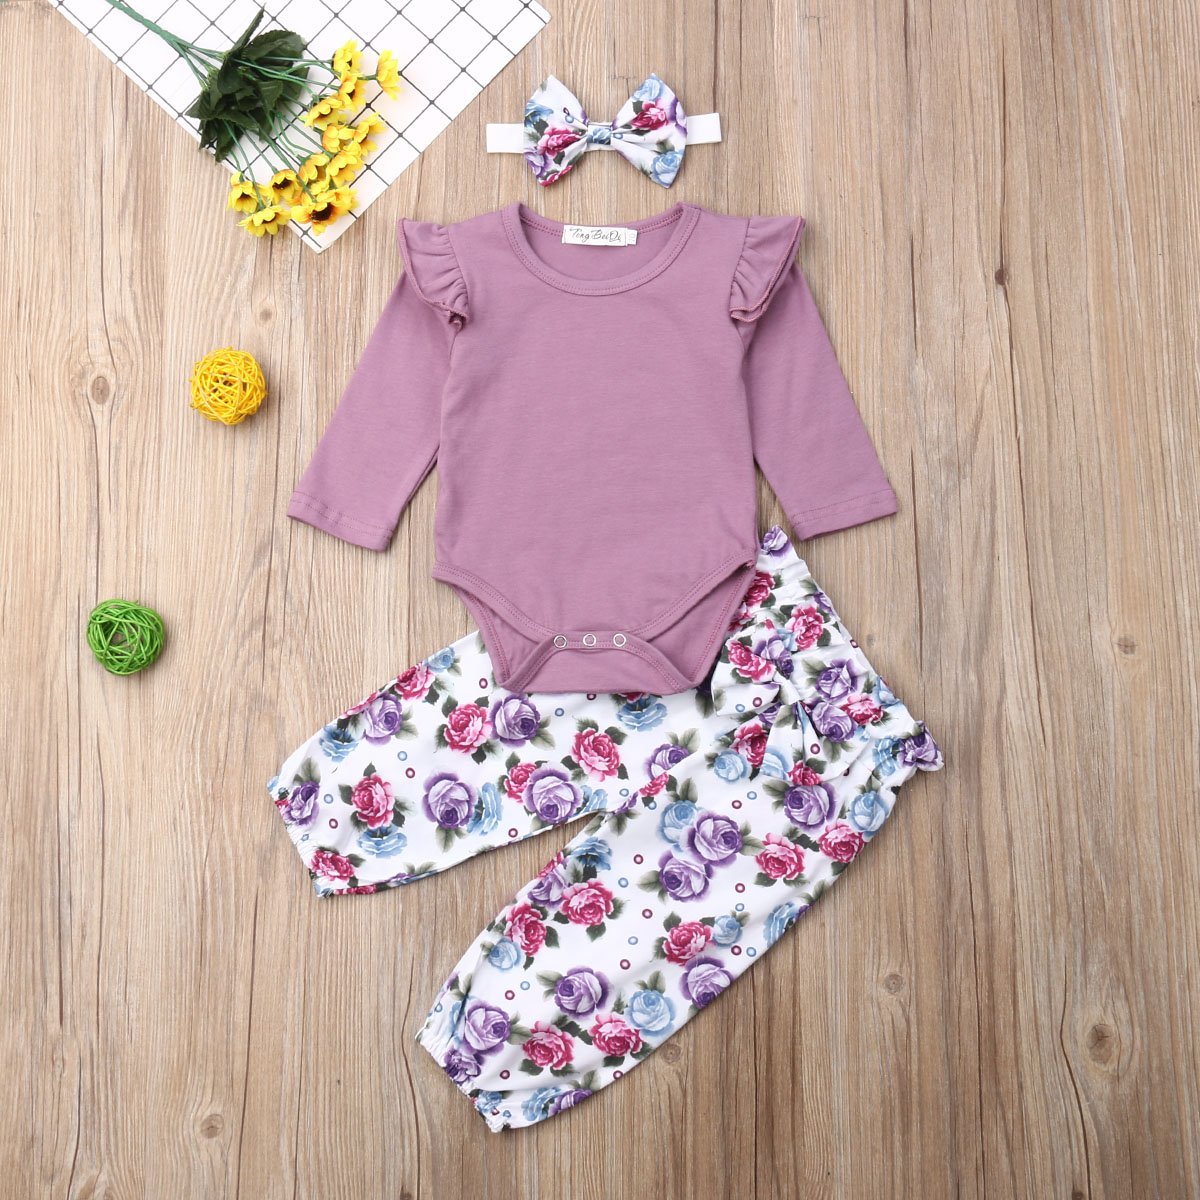 Pudcoco Newborn Baby Girl Clothes Fly Sleeve Cotton Romper Tops Flower Print Long Pants Headband 3Pcs Outfits Clothes